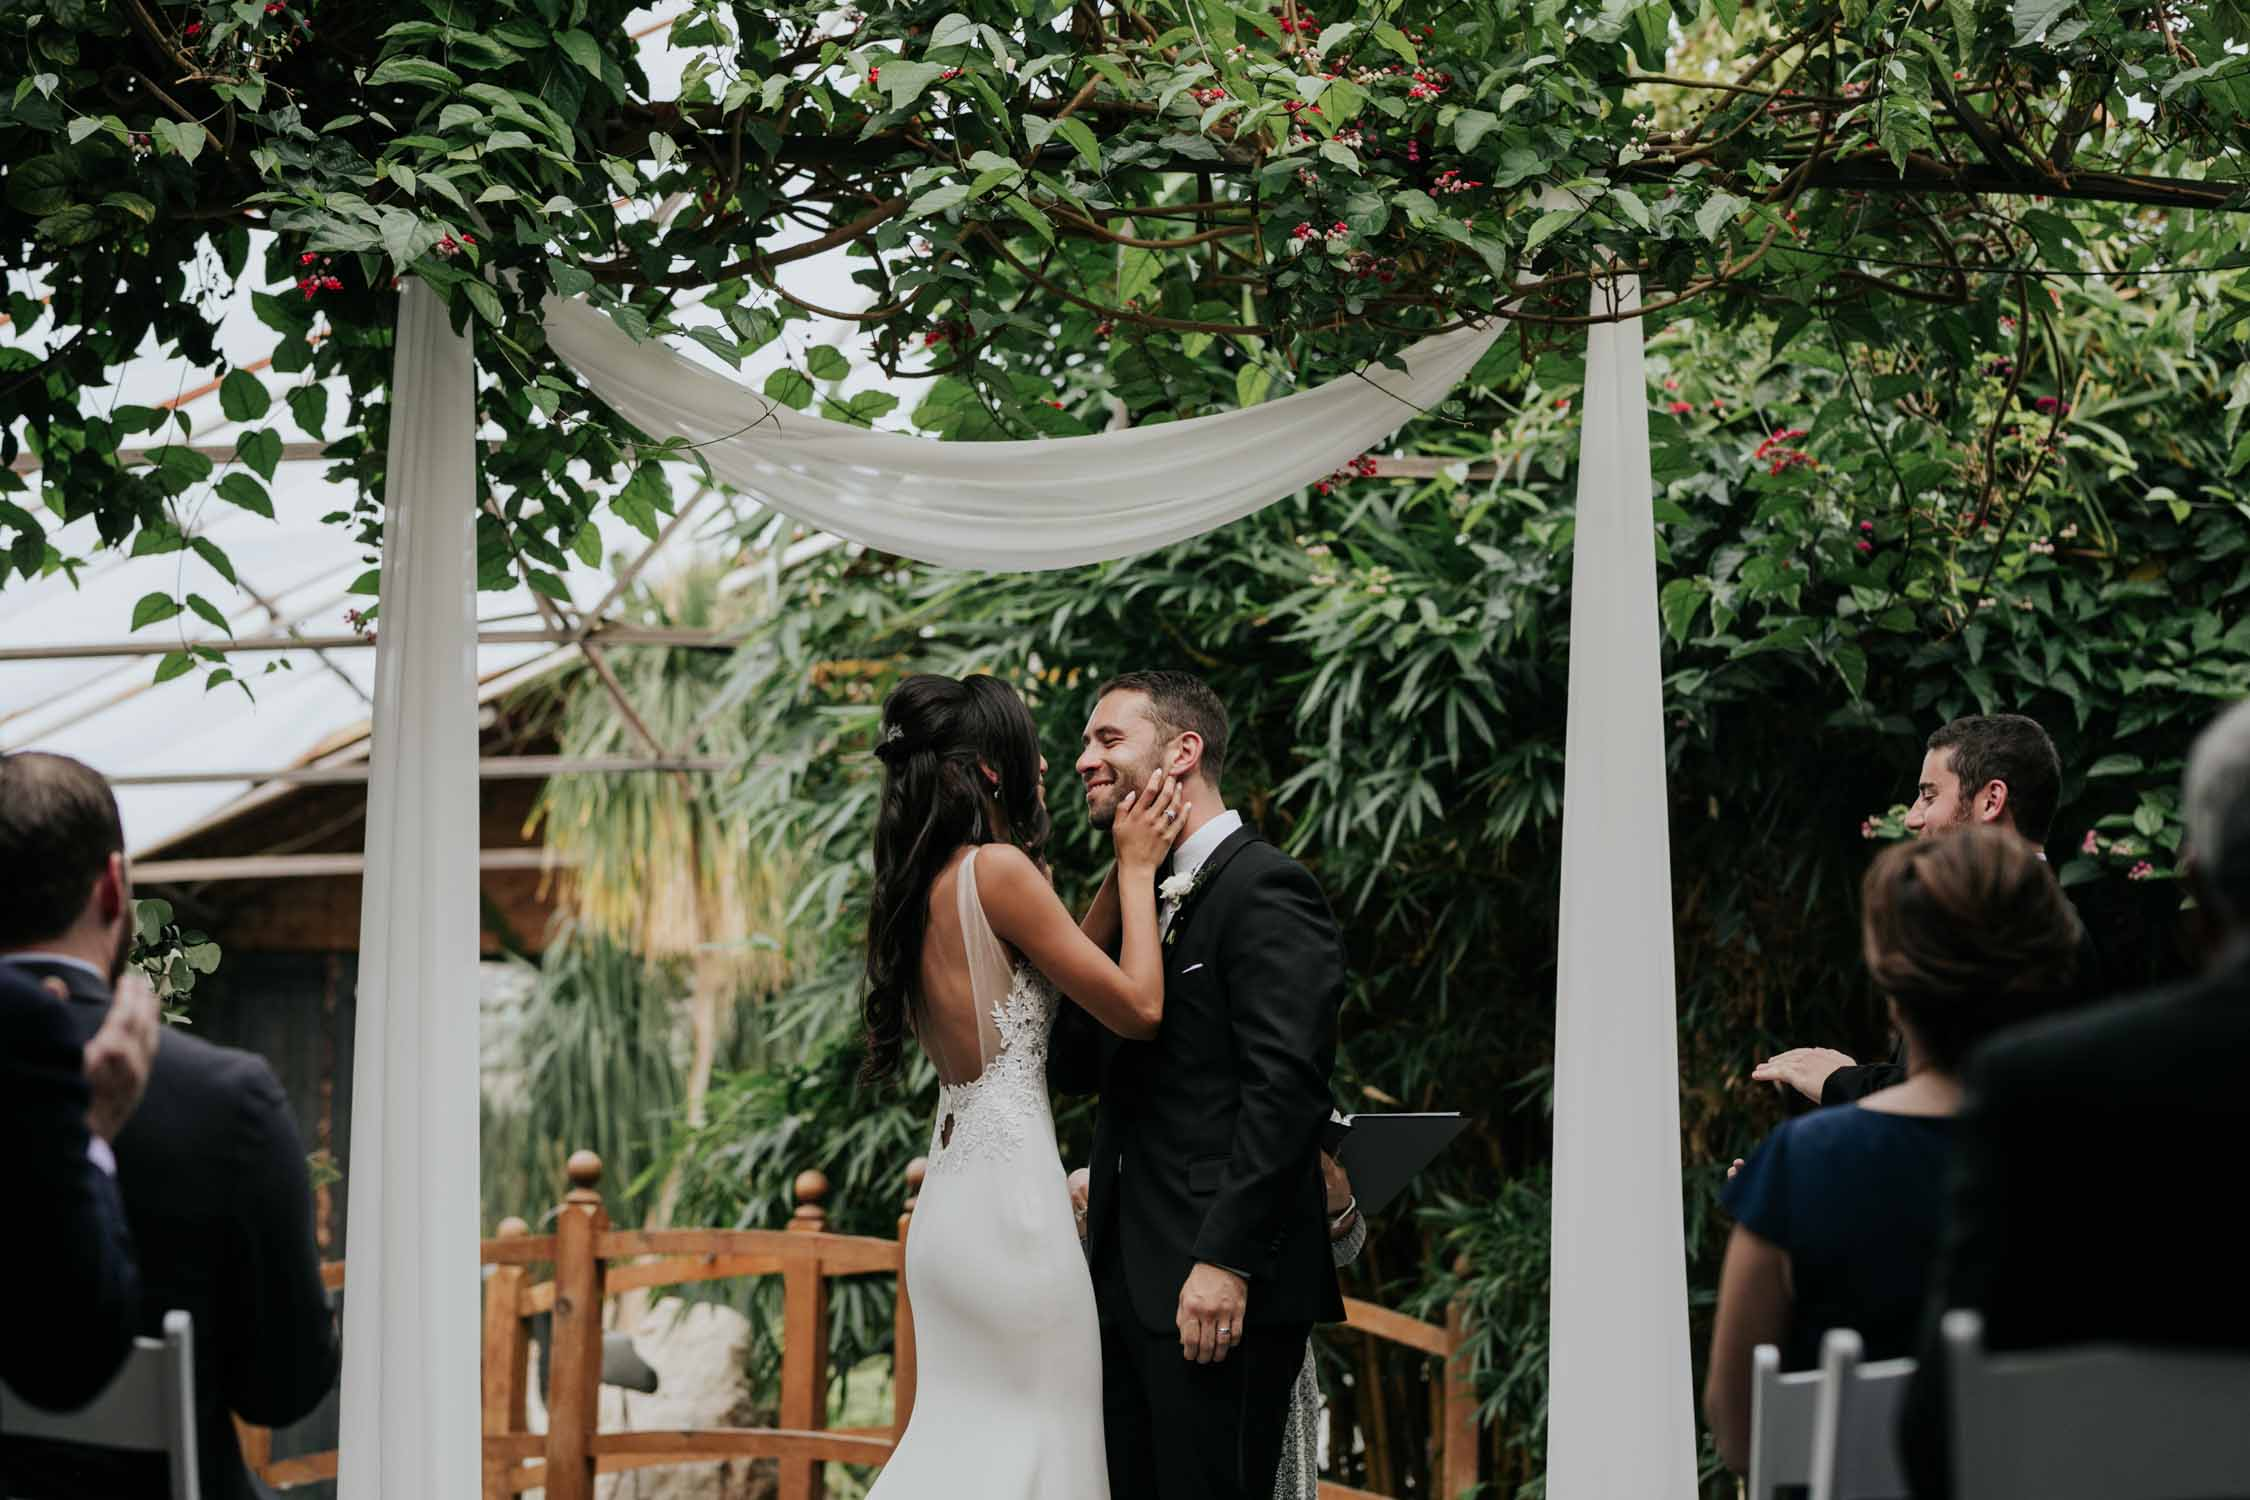 The moment before the first kiss at Madsen's Greenhouse wedding venue in Newmarket close to Toronto